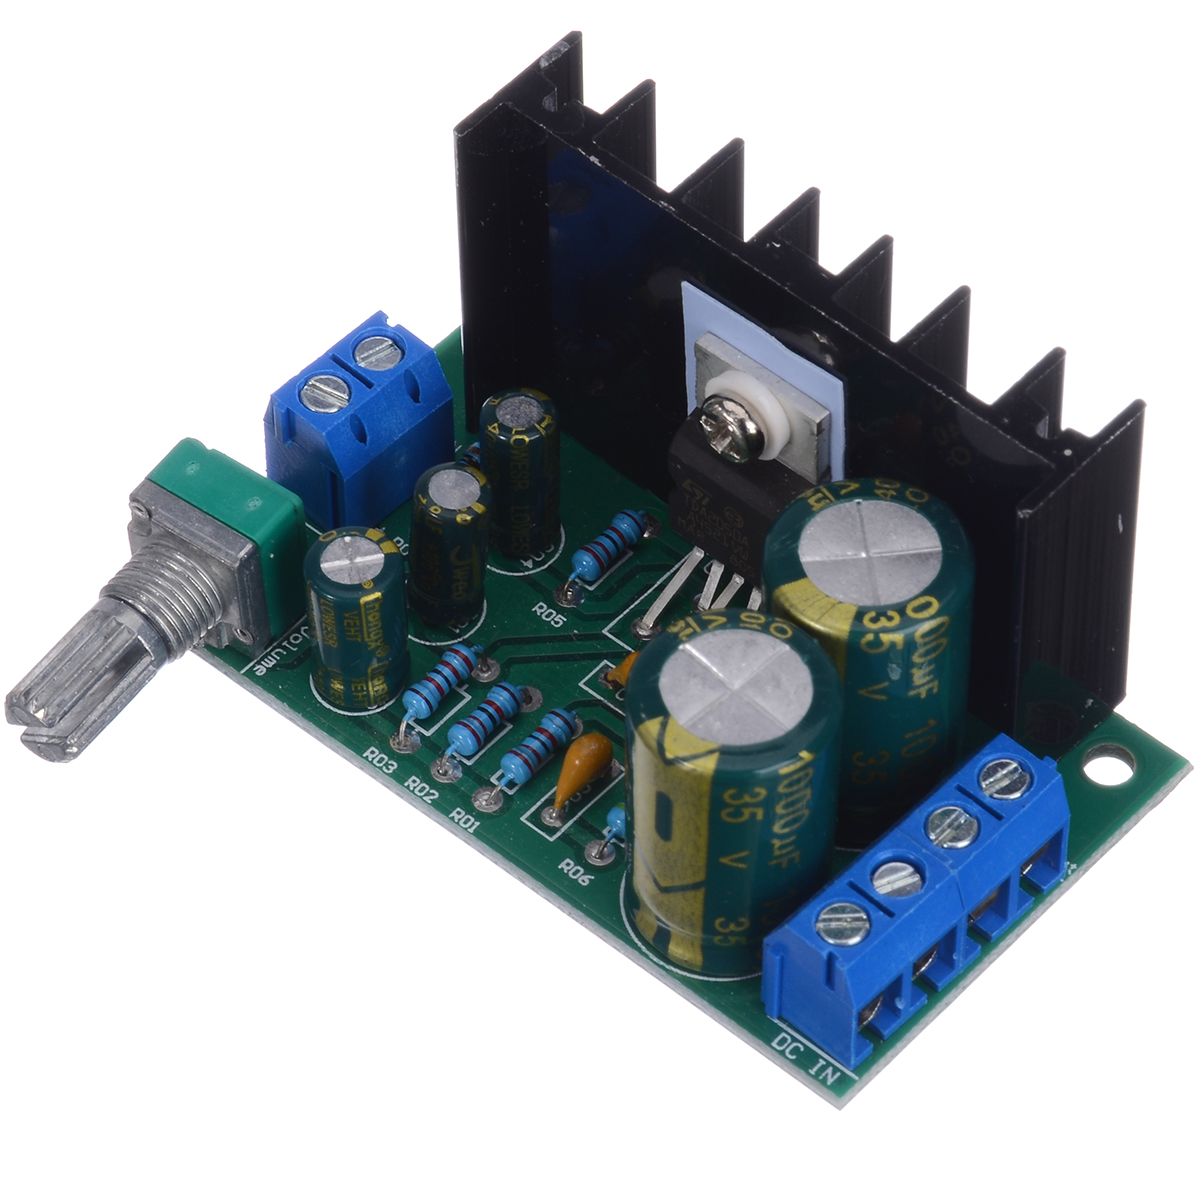 Amplifier Circuit Using Tda2030 2050 1 50watts Amplifier Circuit